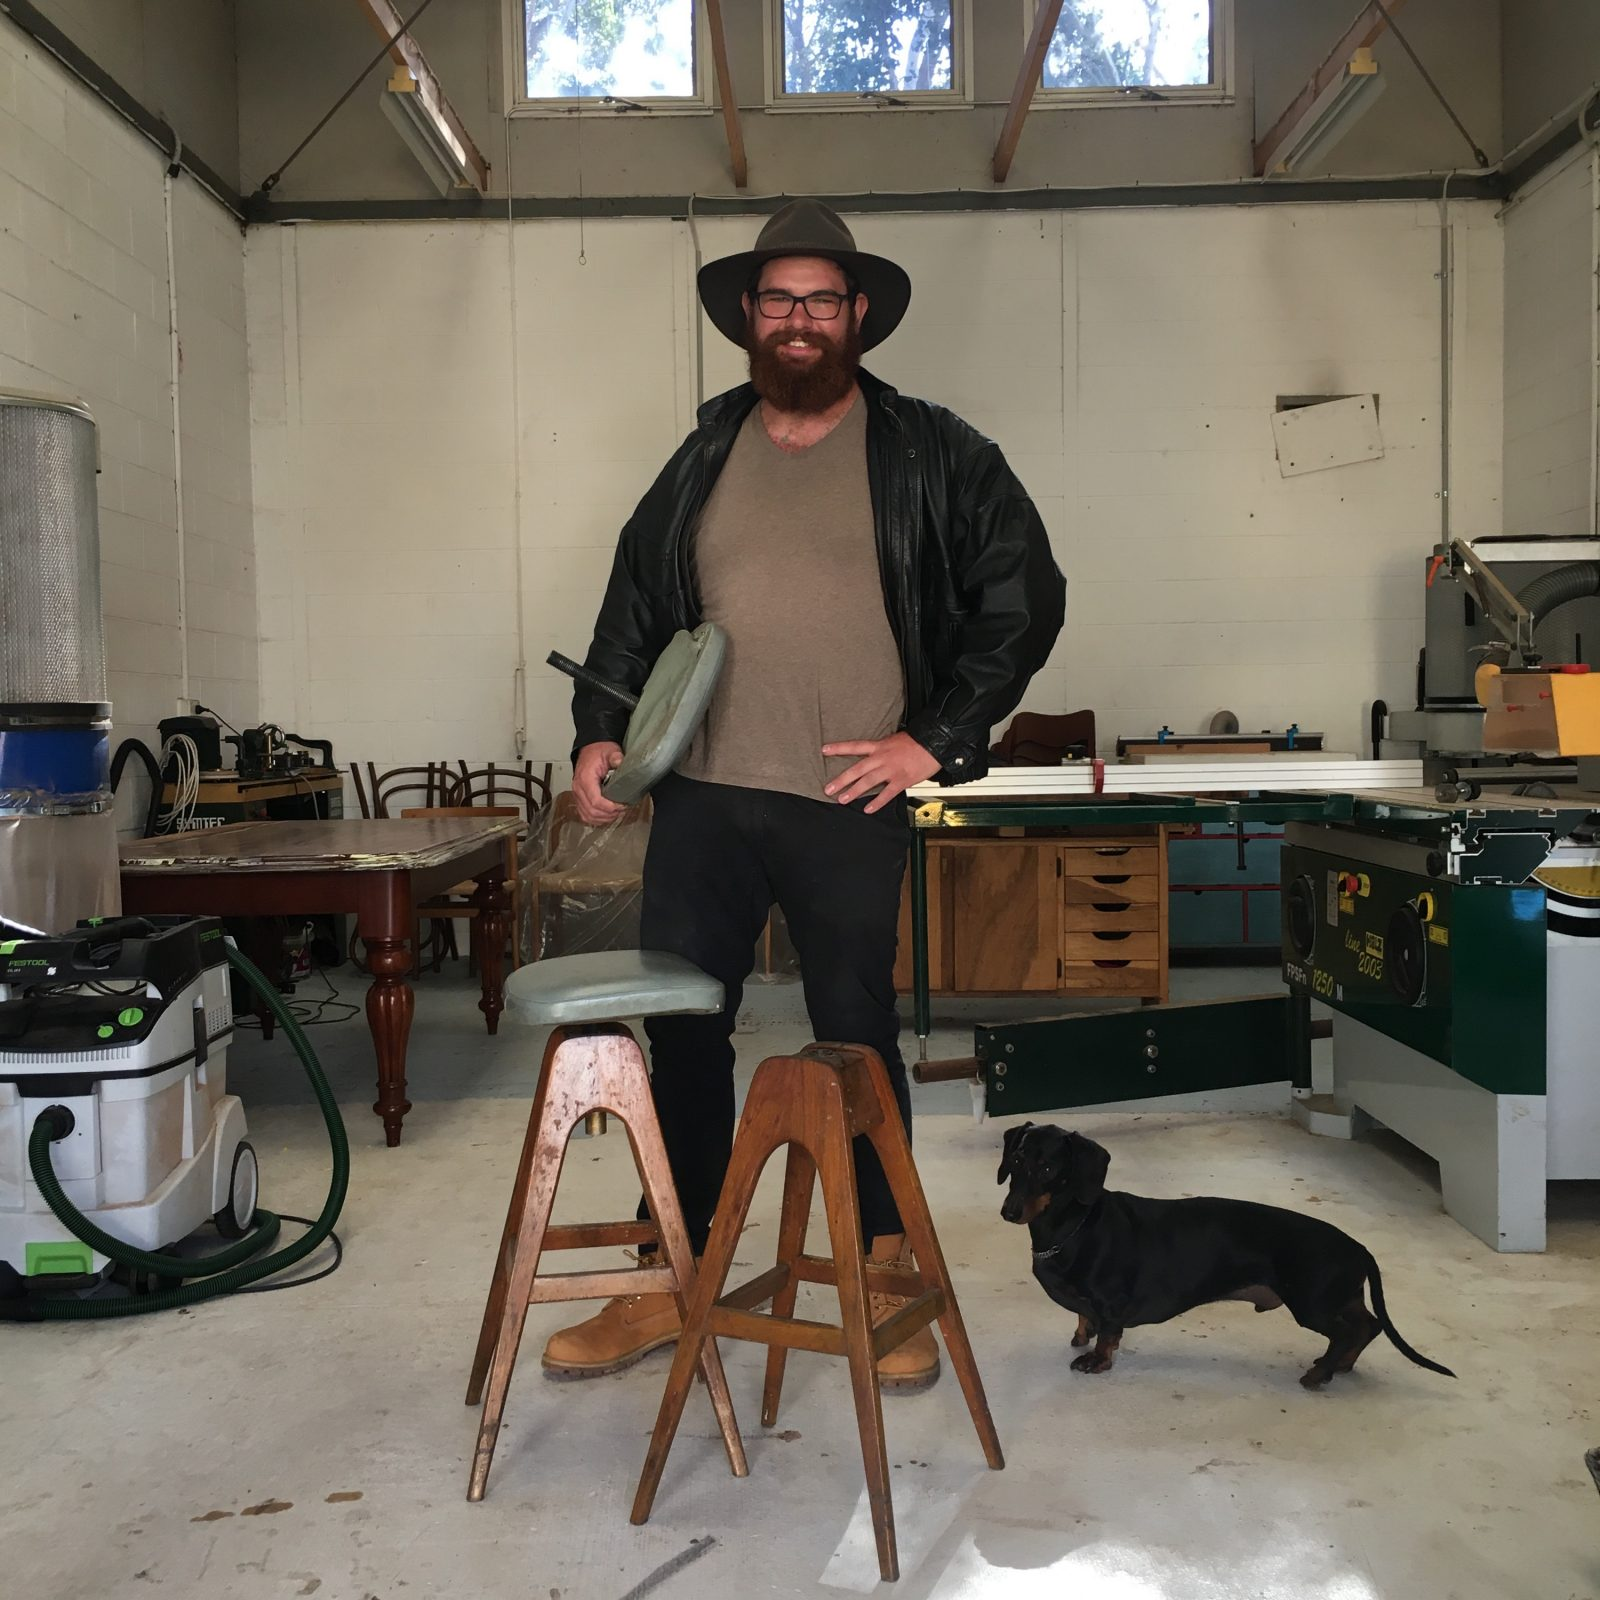 Image: Chris Dalzell, In his Studio, 2019. Photo: Courtesy of the artist